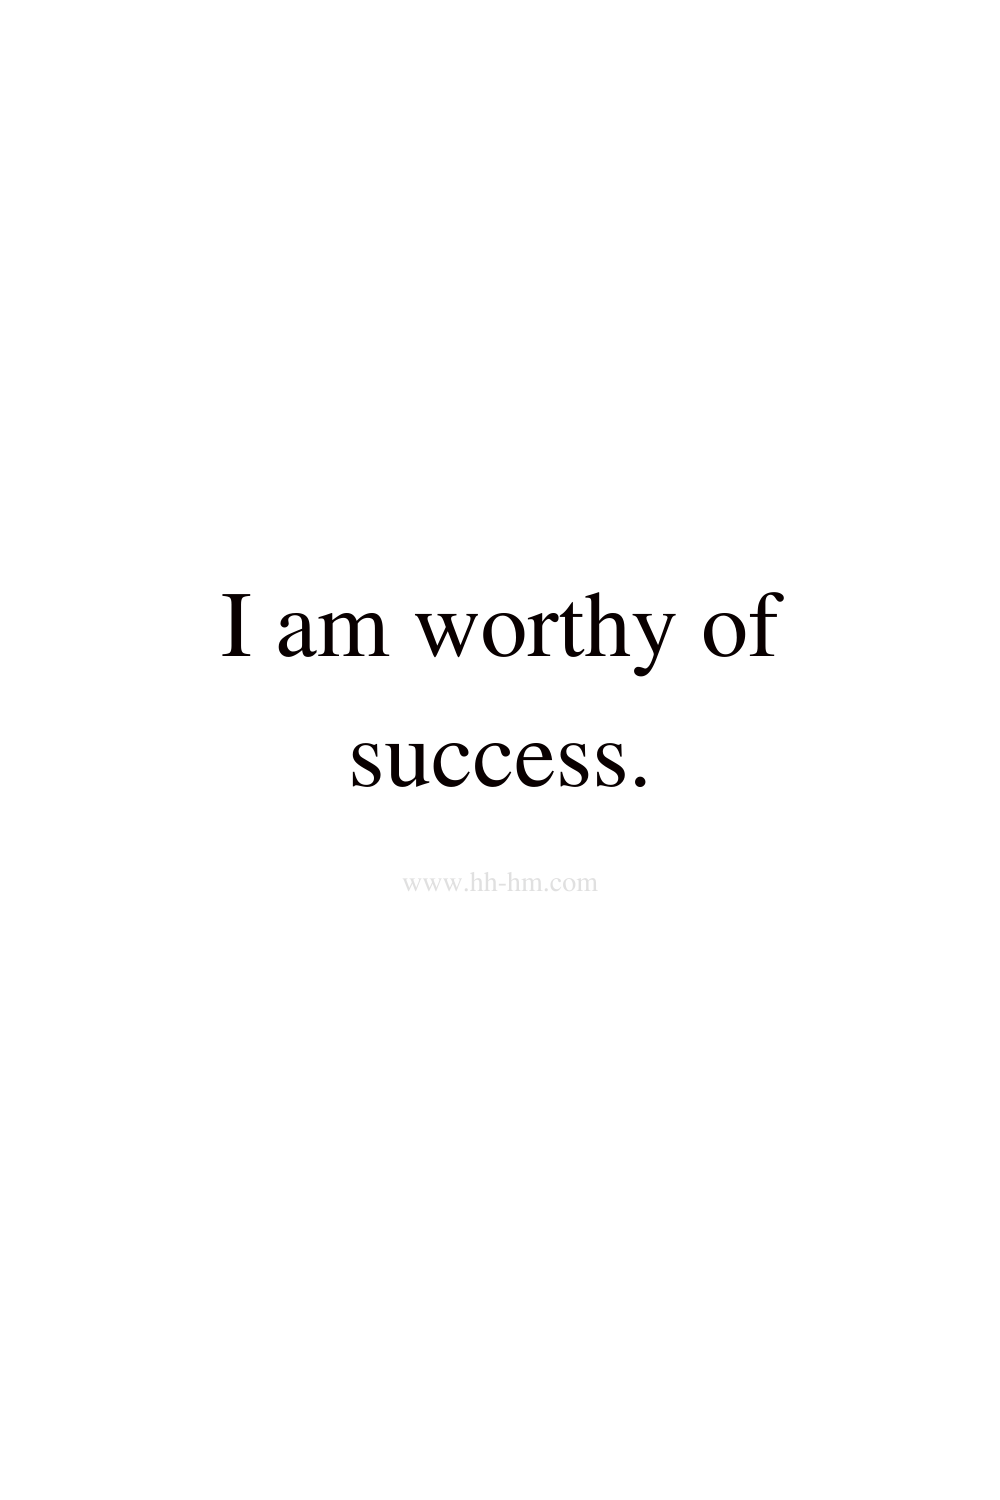 I am worthy of success -morning affirmations for success